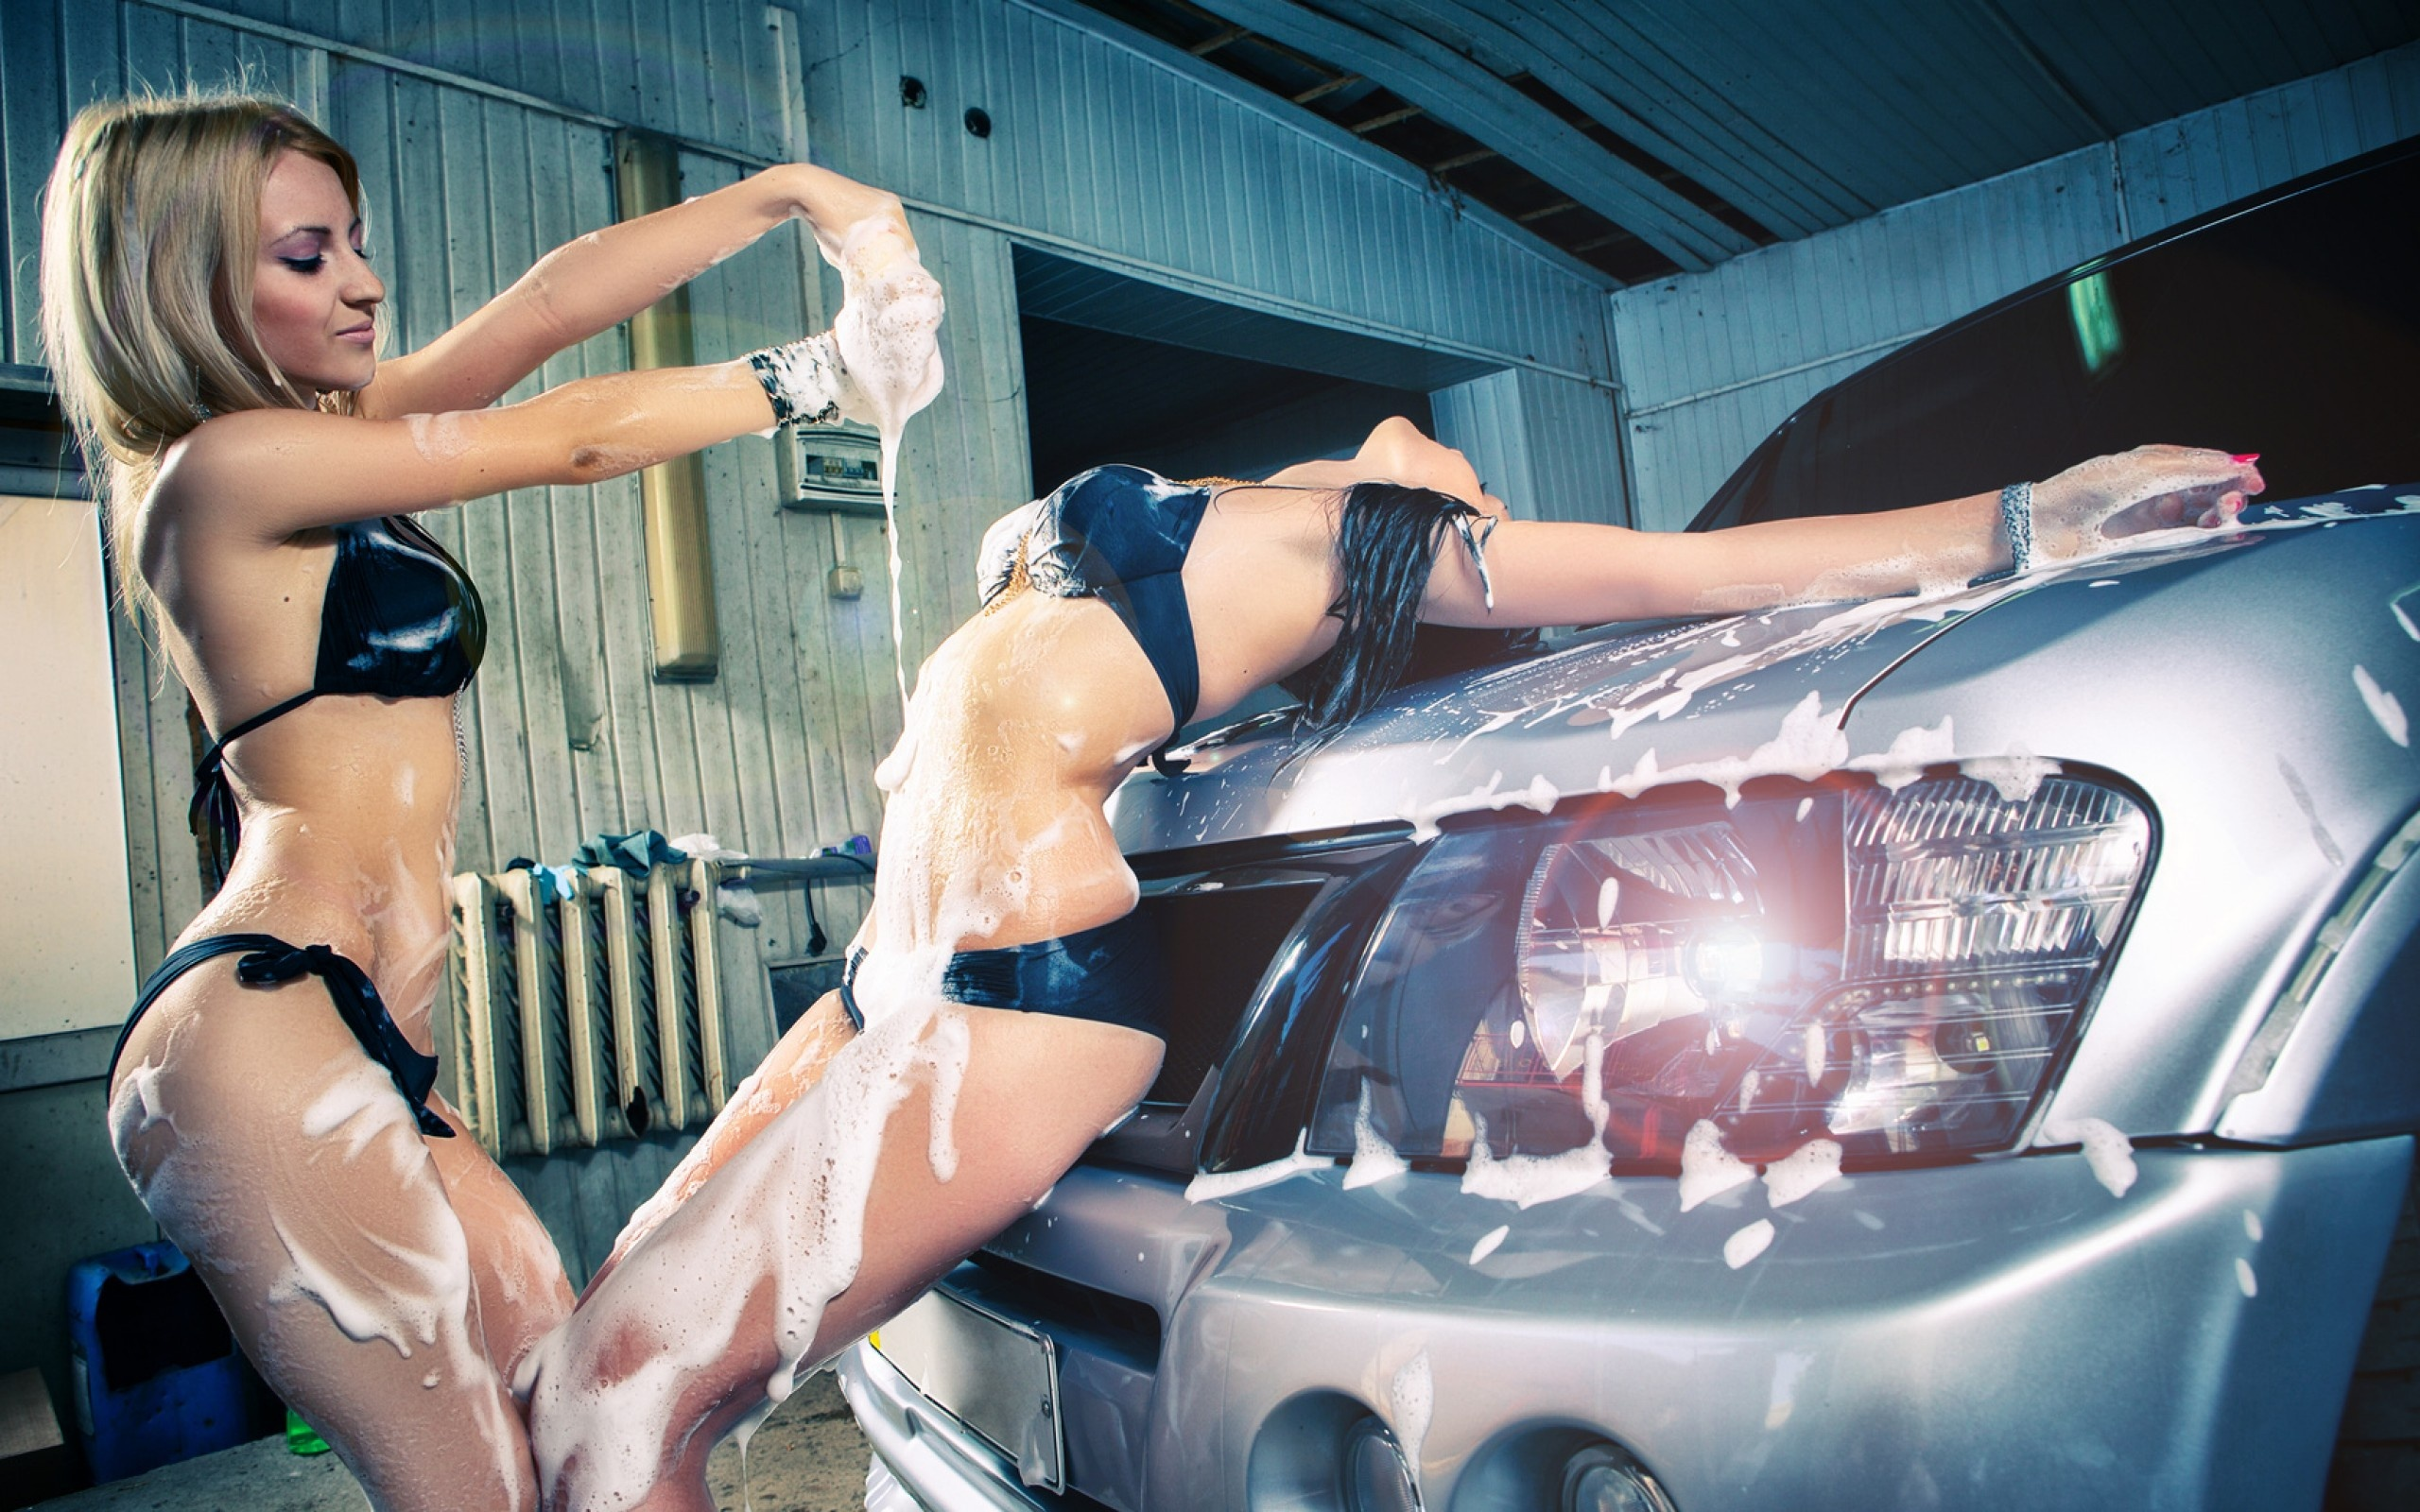 four car washing hotties service one big dicked guy outdoors  285987